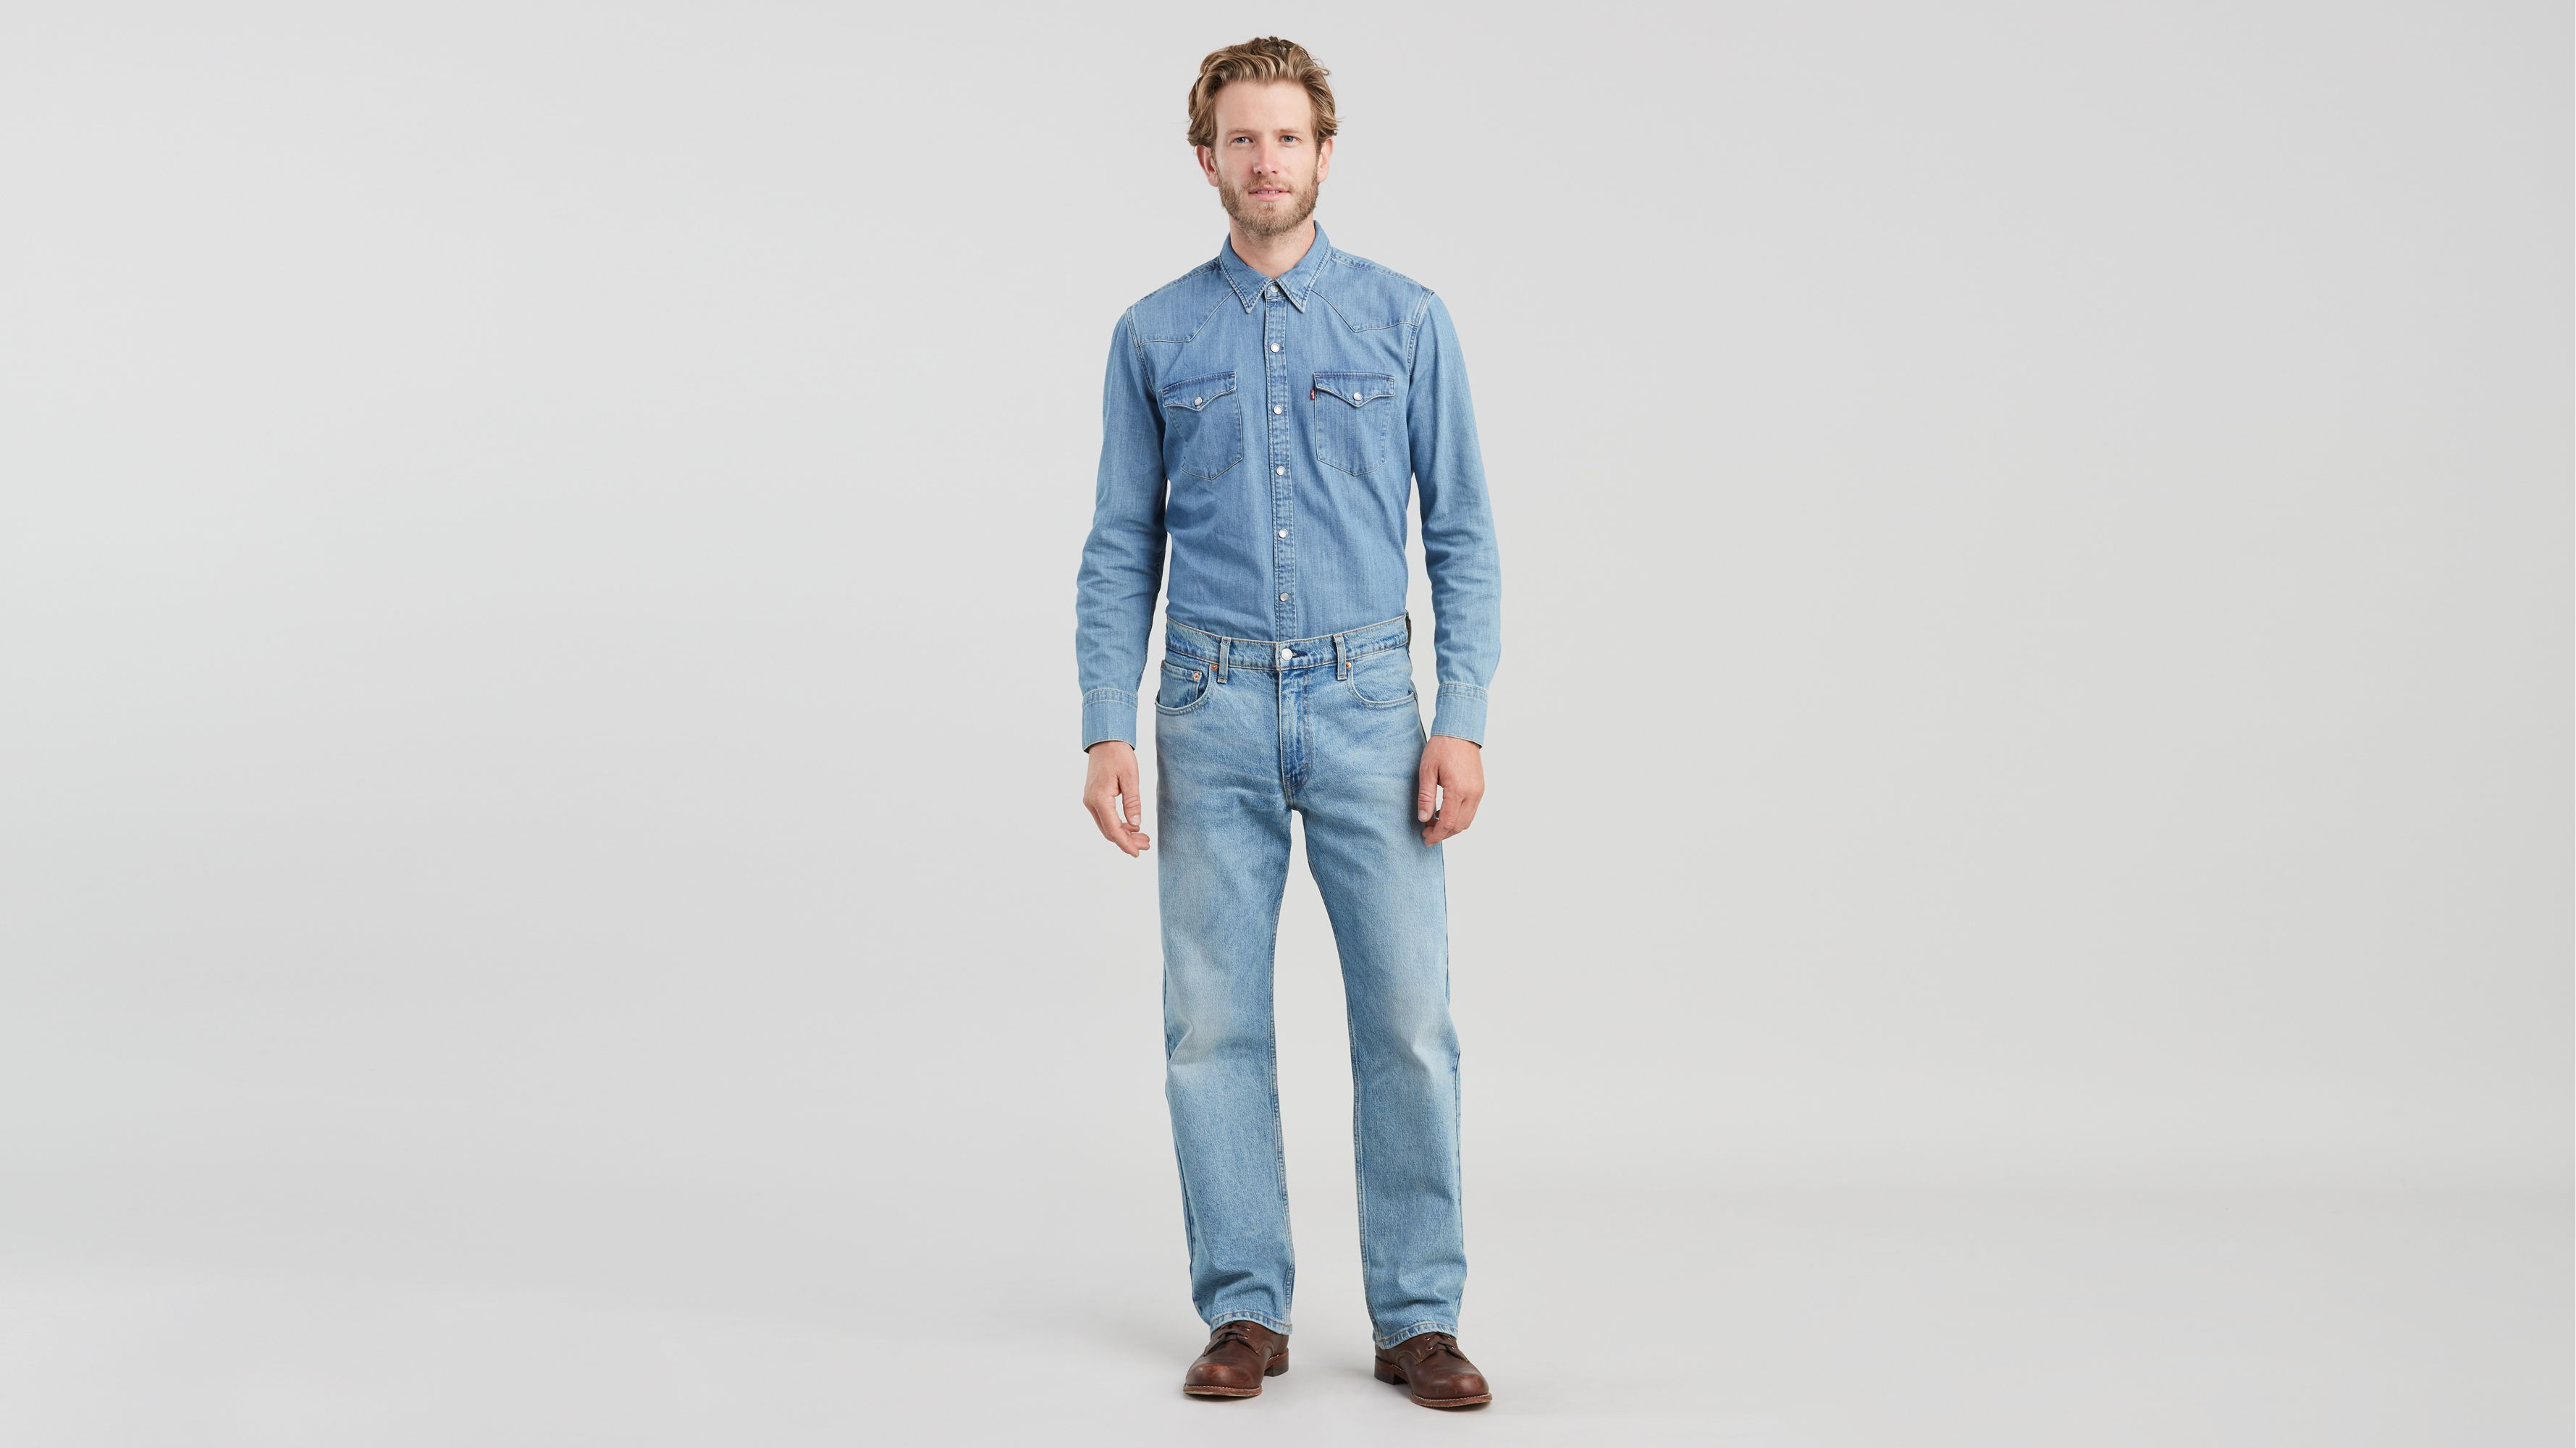 7a3f6417b9 569™ Loose Straight Fit Jeans - Light Wash | Levi's® US